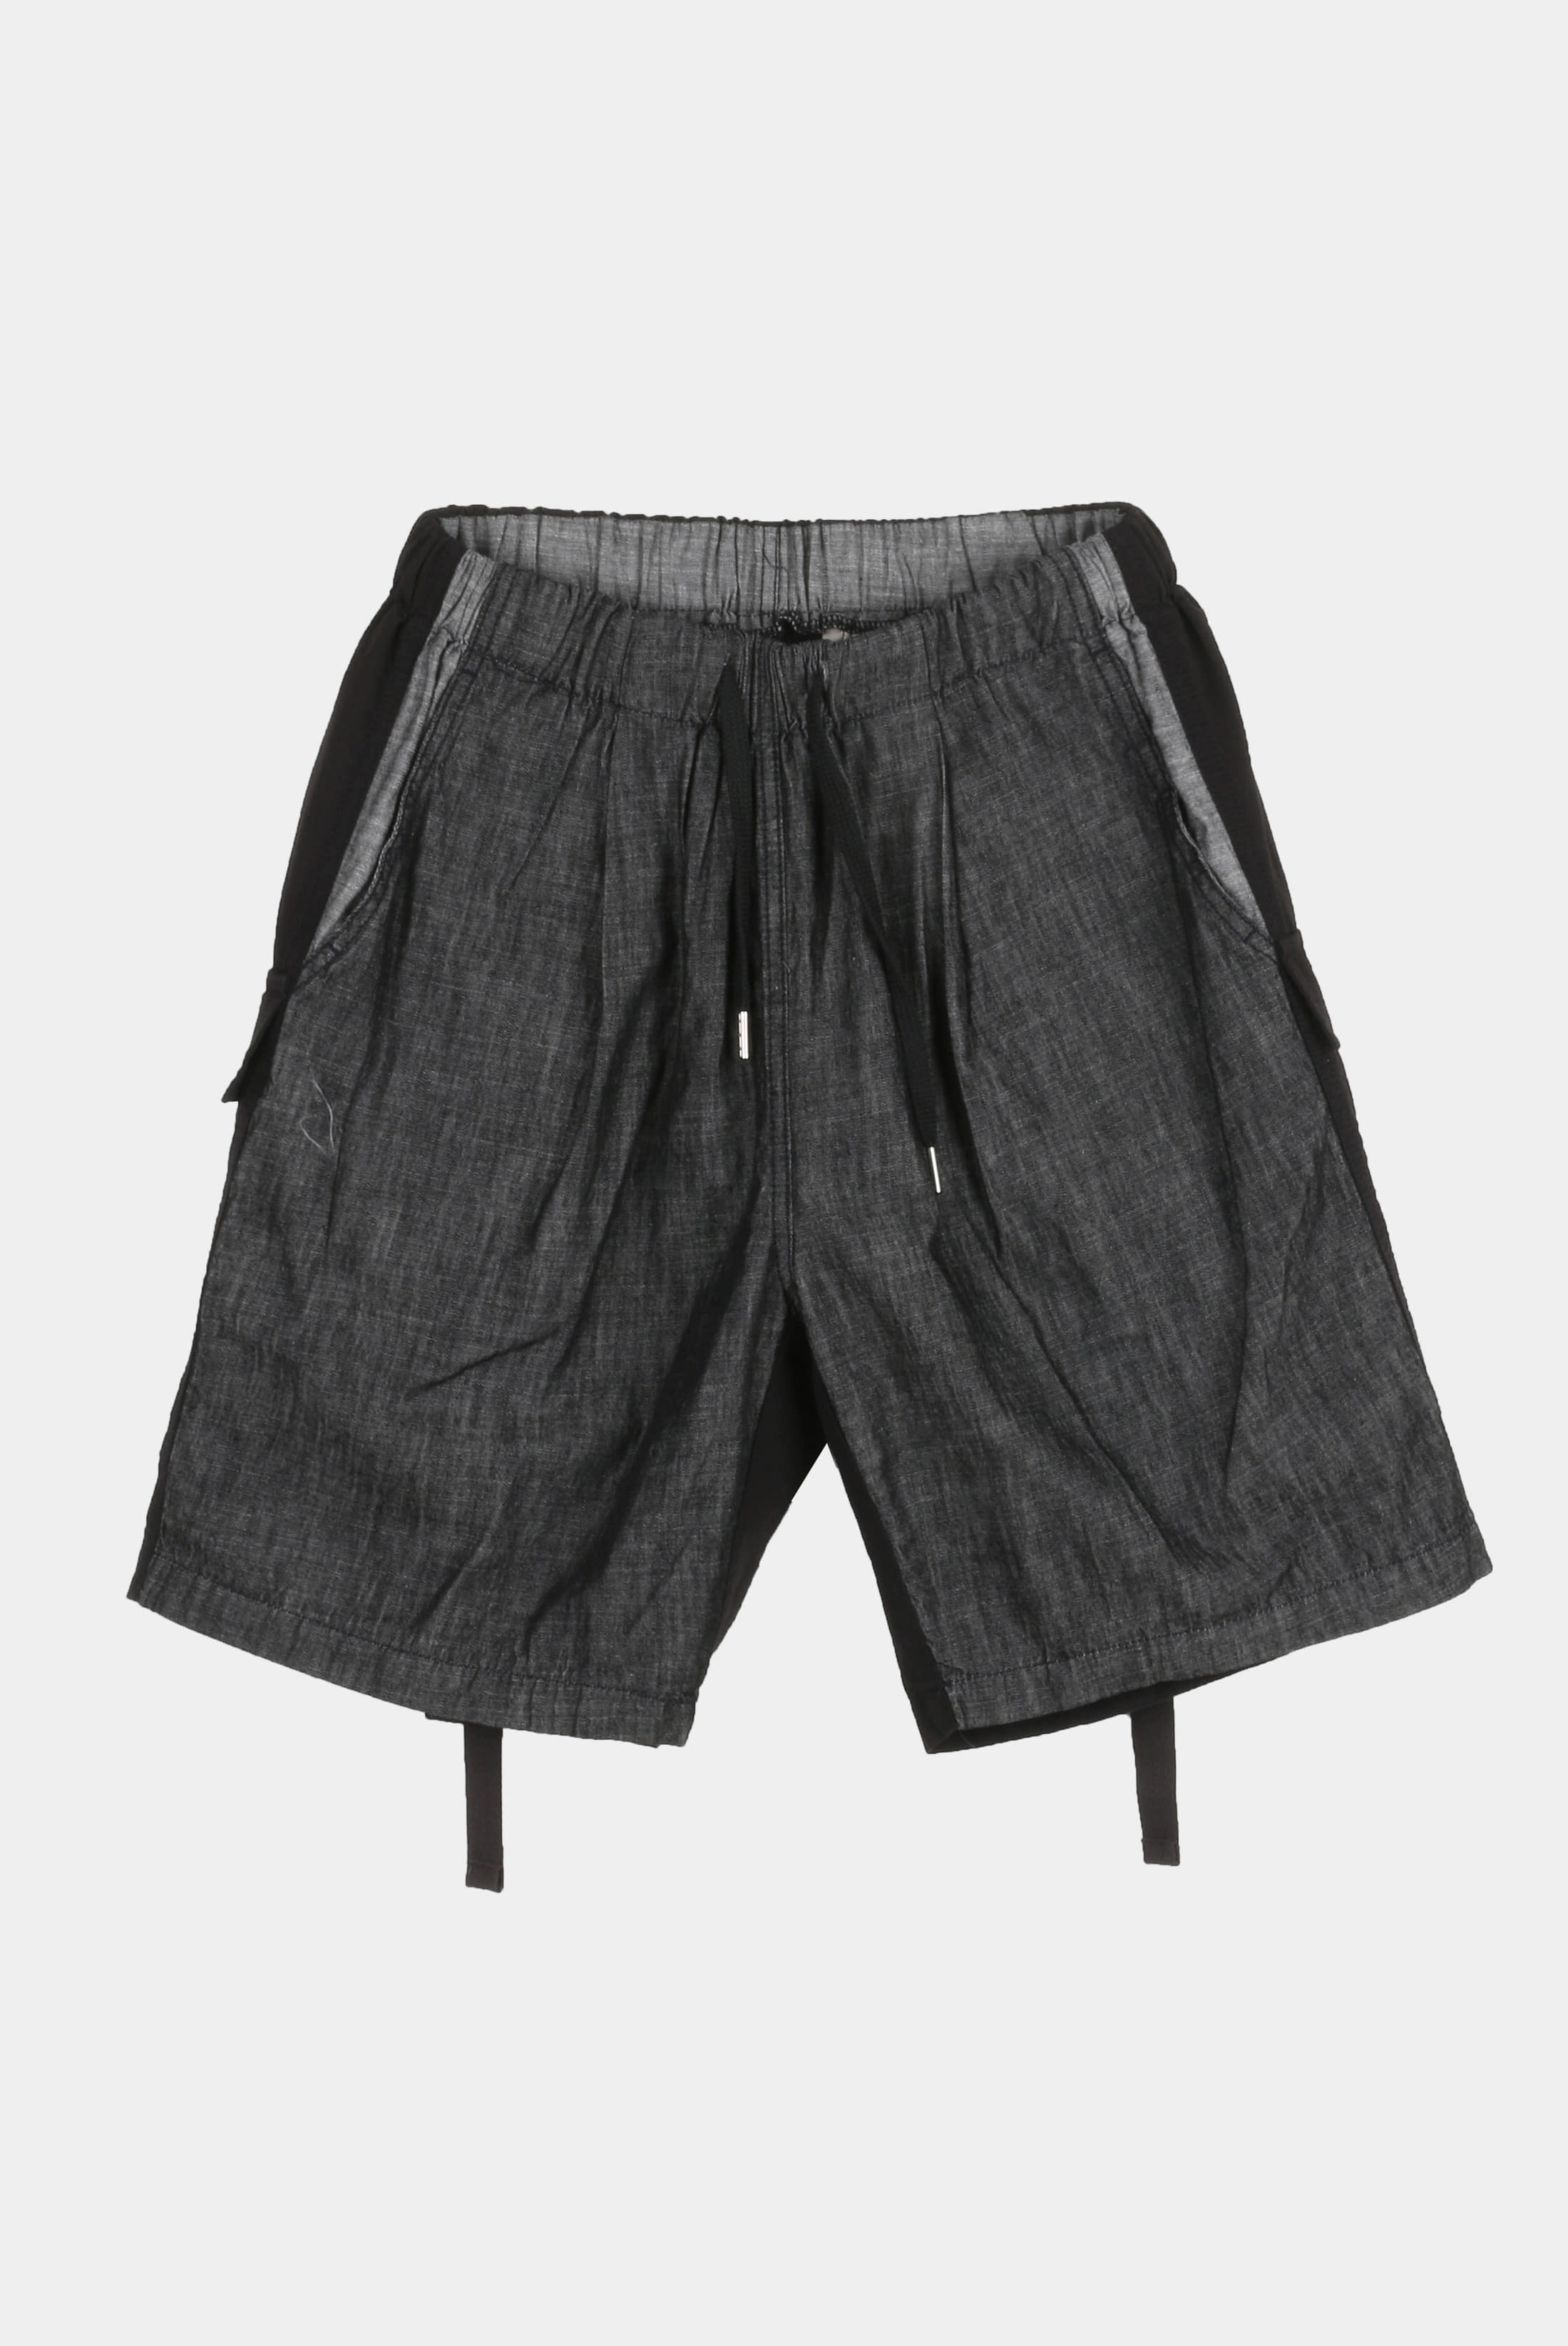 Unbalance_Color String Half_Pants